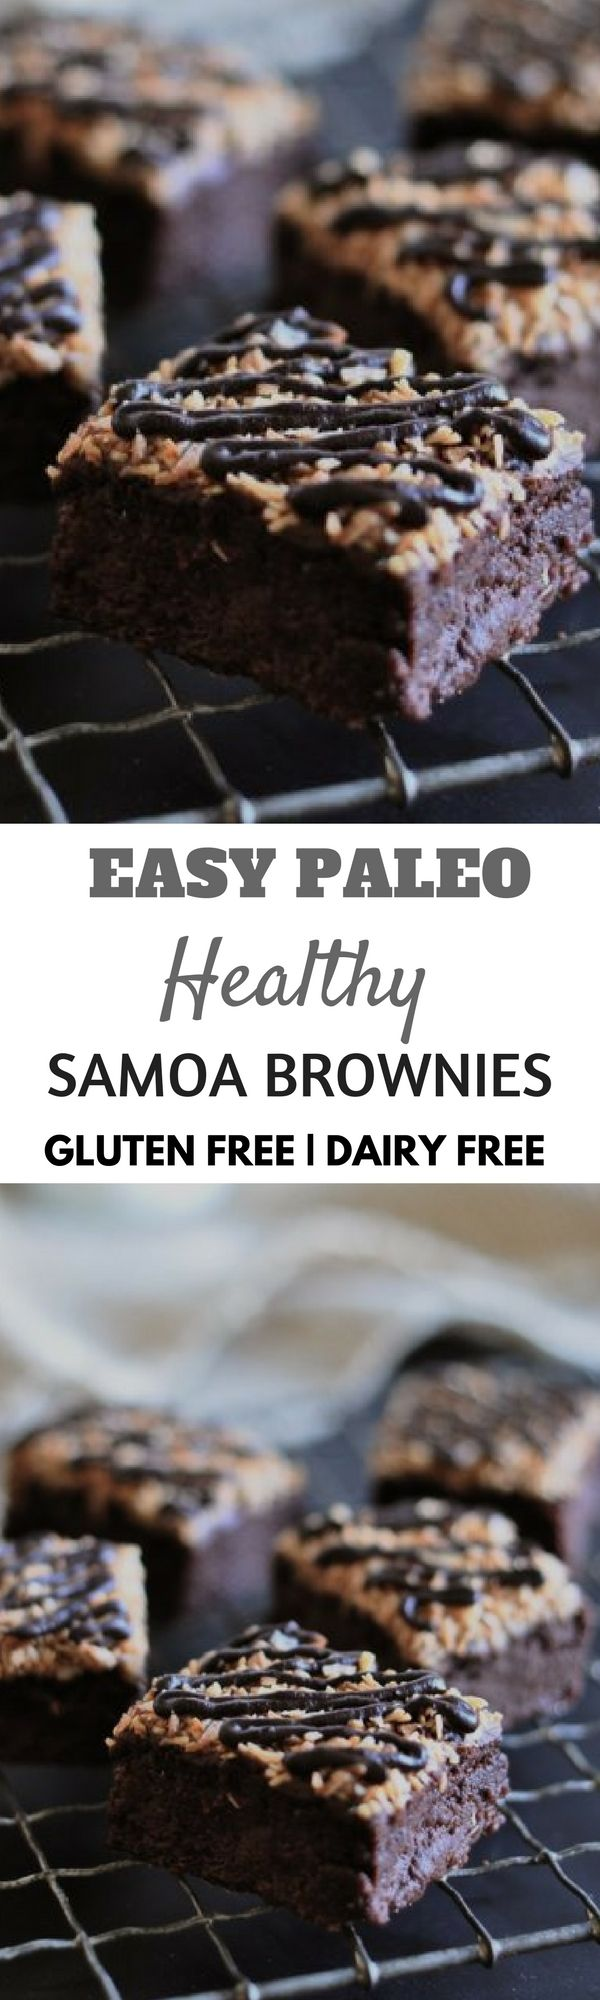 Healthy paleo samoa brownies. Best healthy paleo desserts for summer.